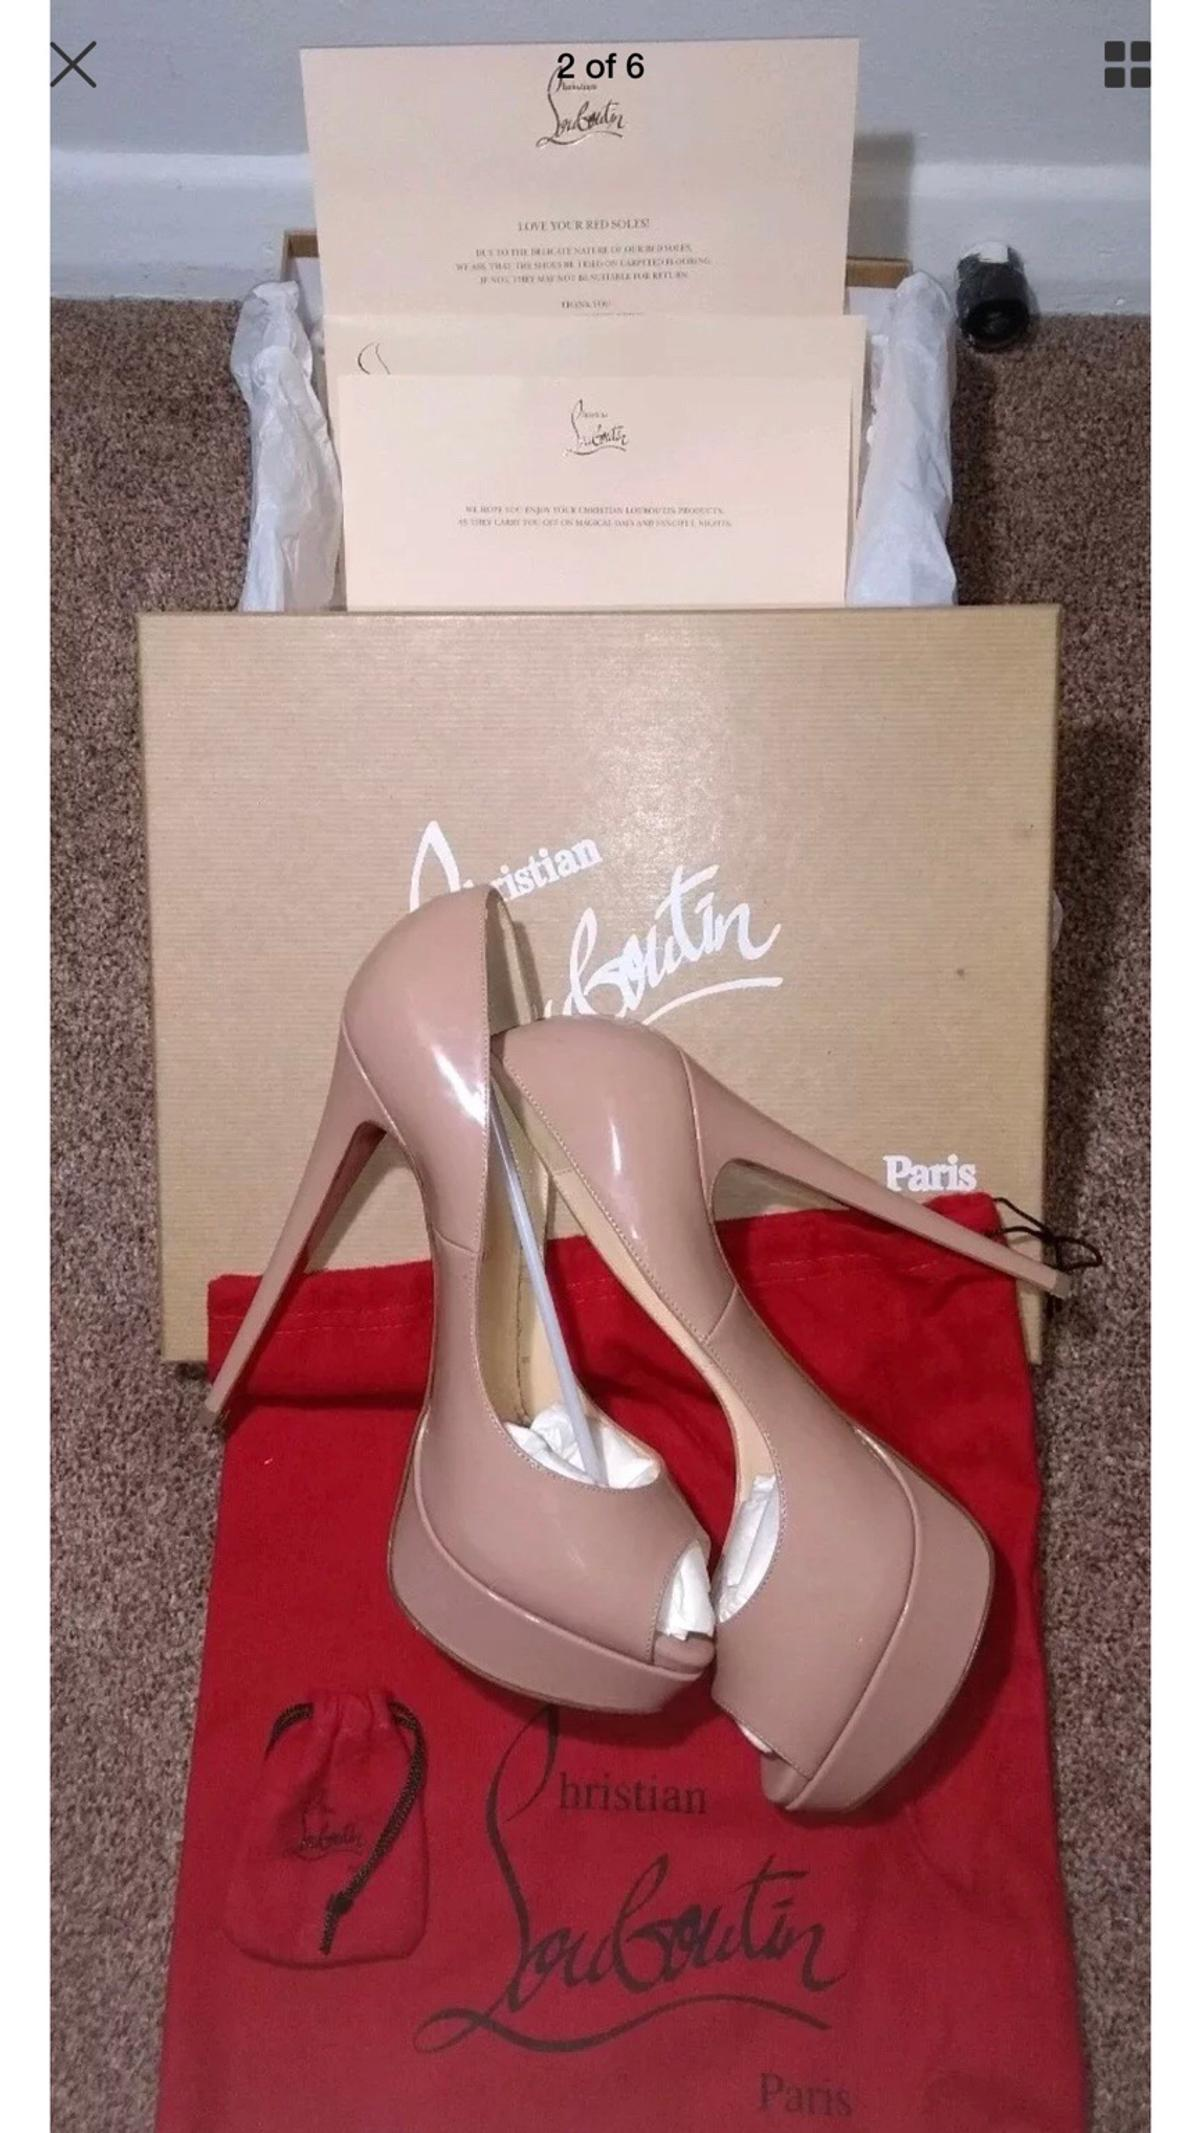 eb9a8659a98 Sexy Christian Louboutin high heels in TW11 Thames for £400.00 for ...